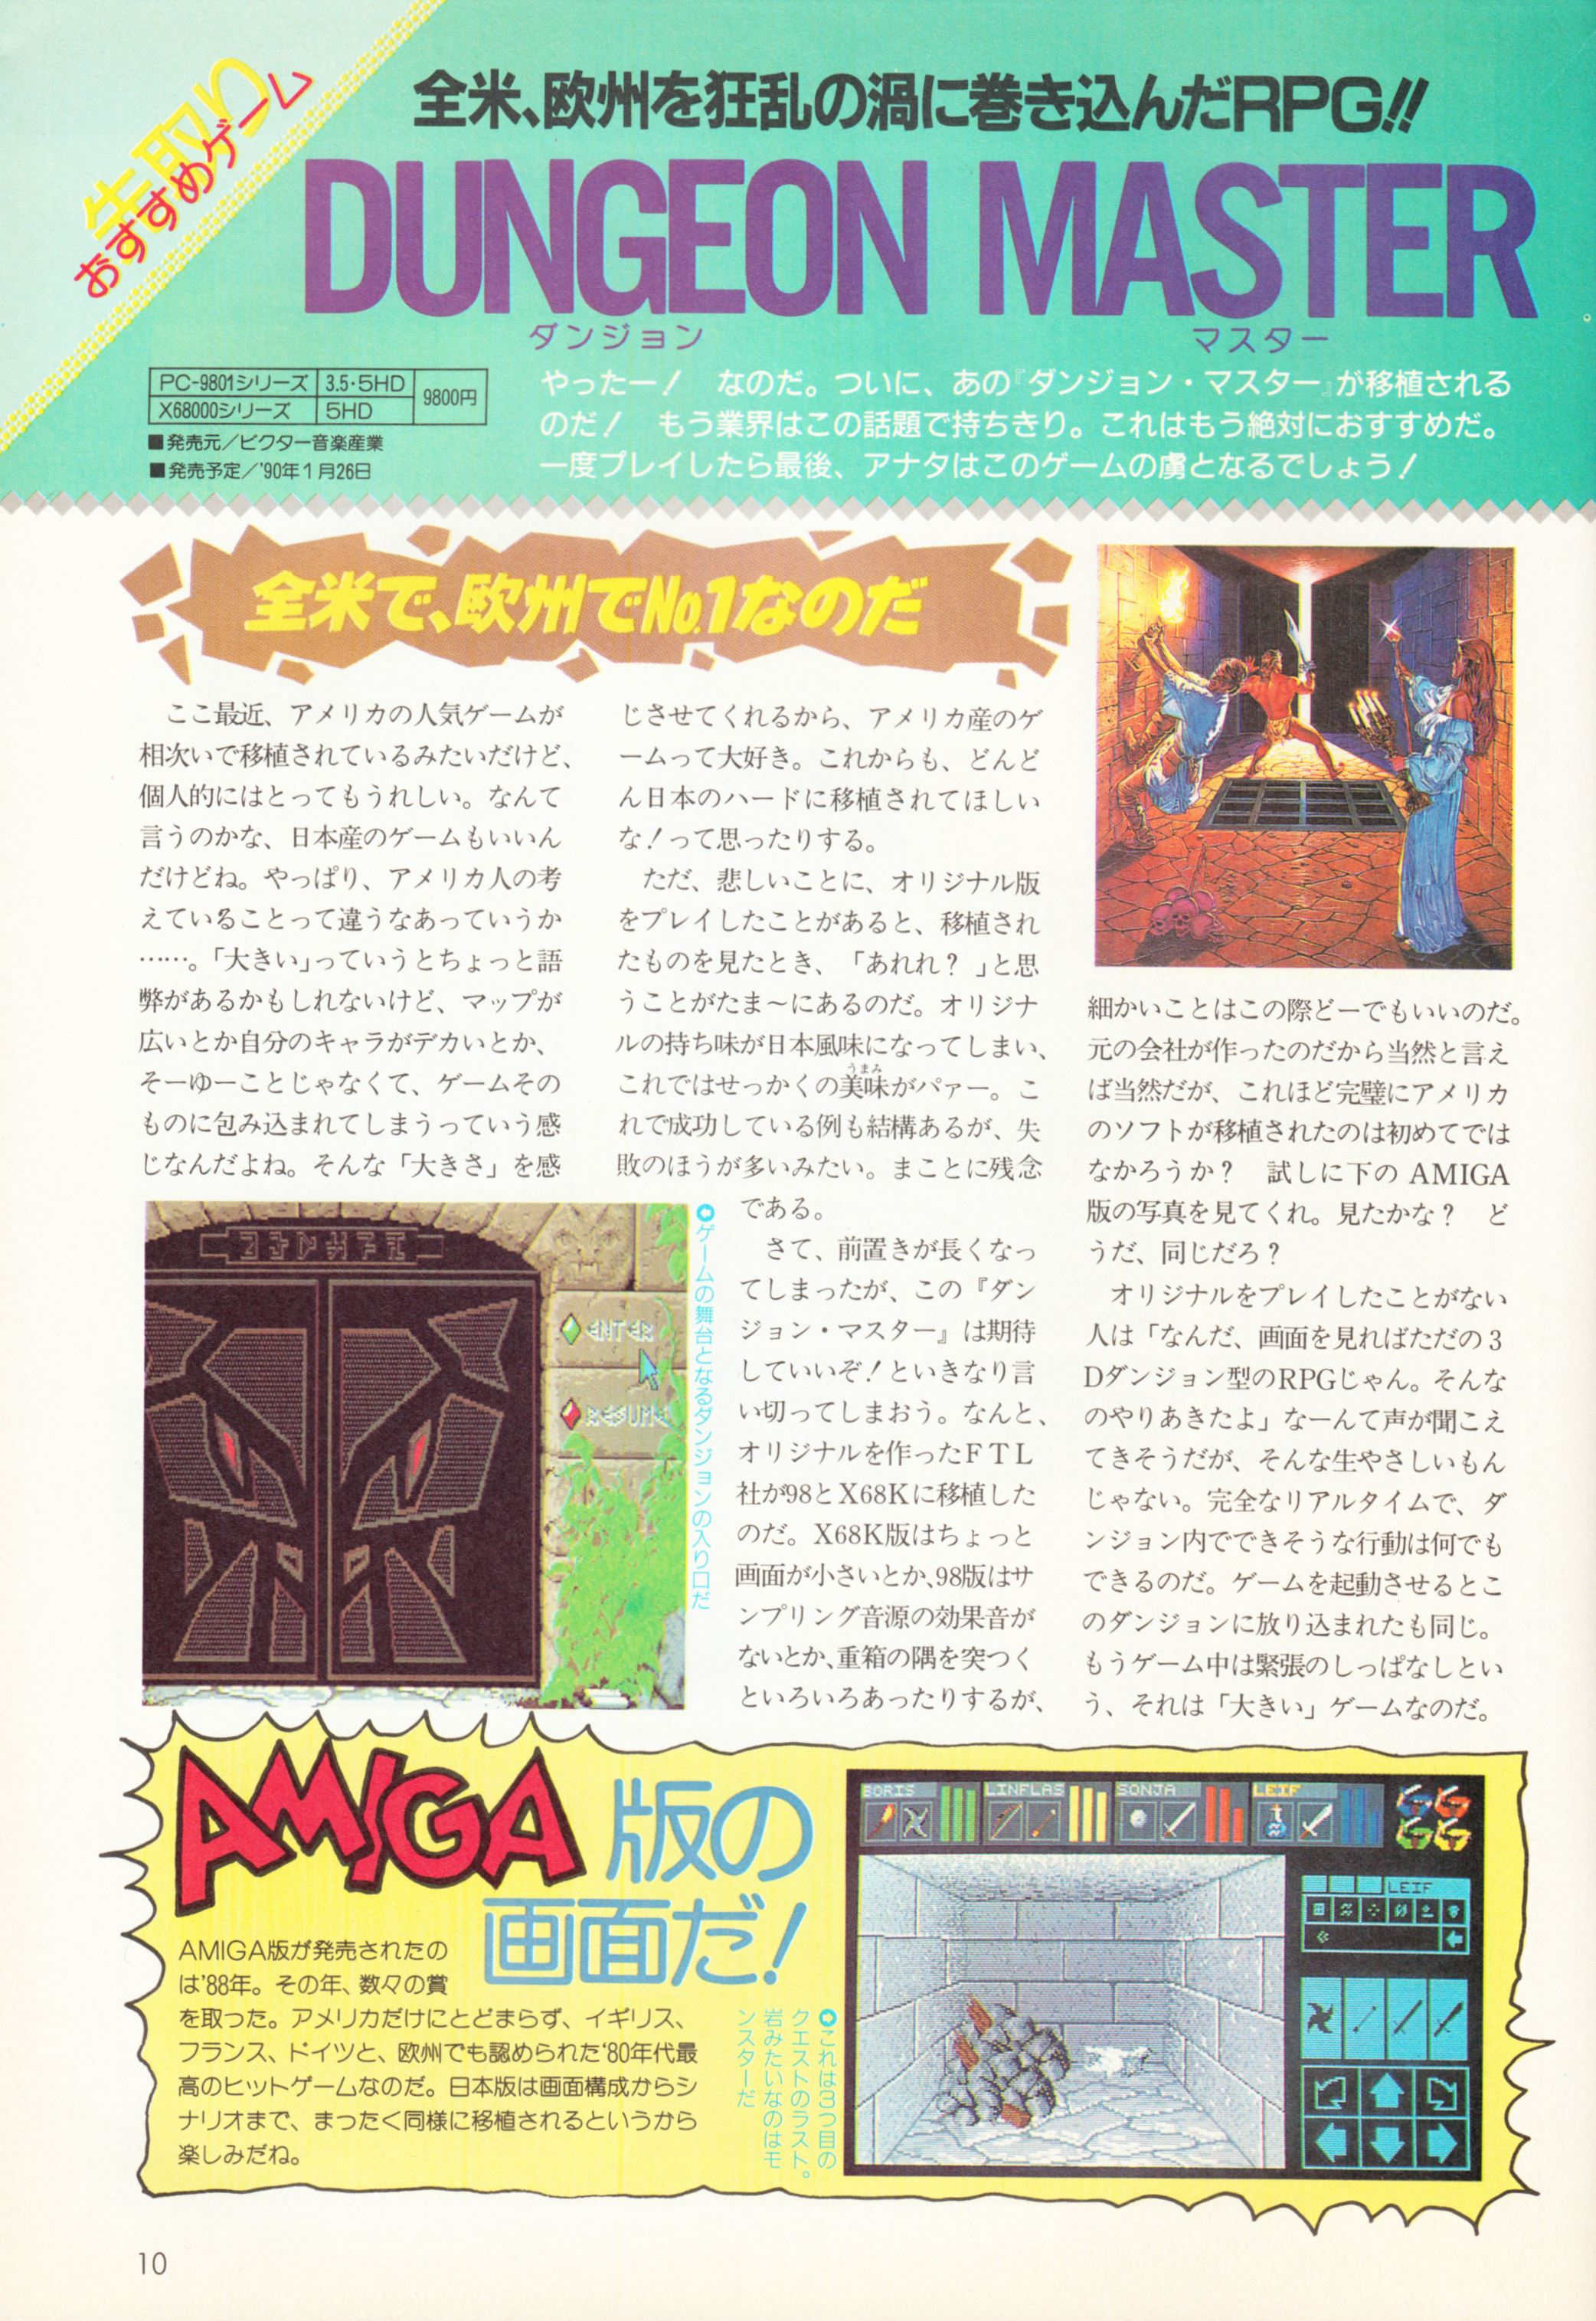 Dungeon Master Review published in Japanese magazine 'Technopolis', Vol 9 No 1 01 January 1990, Page 10